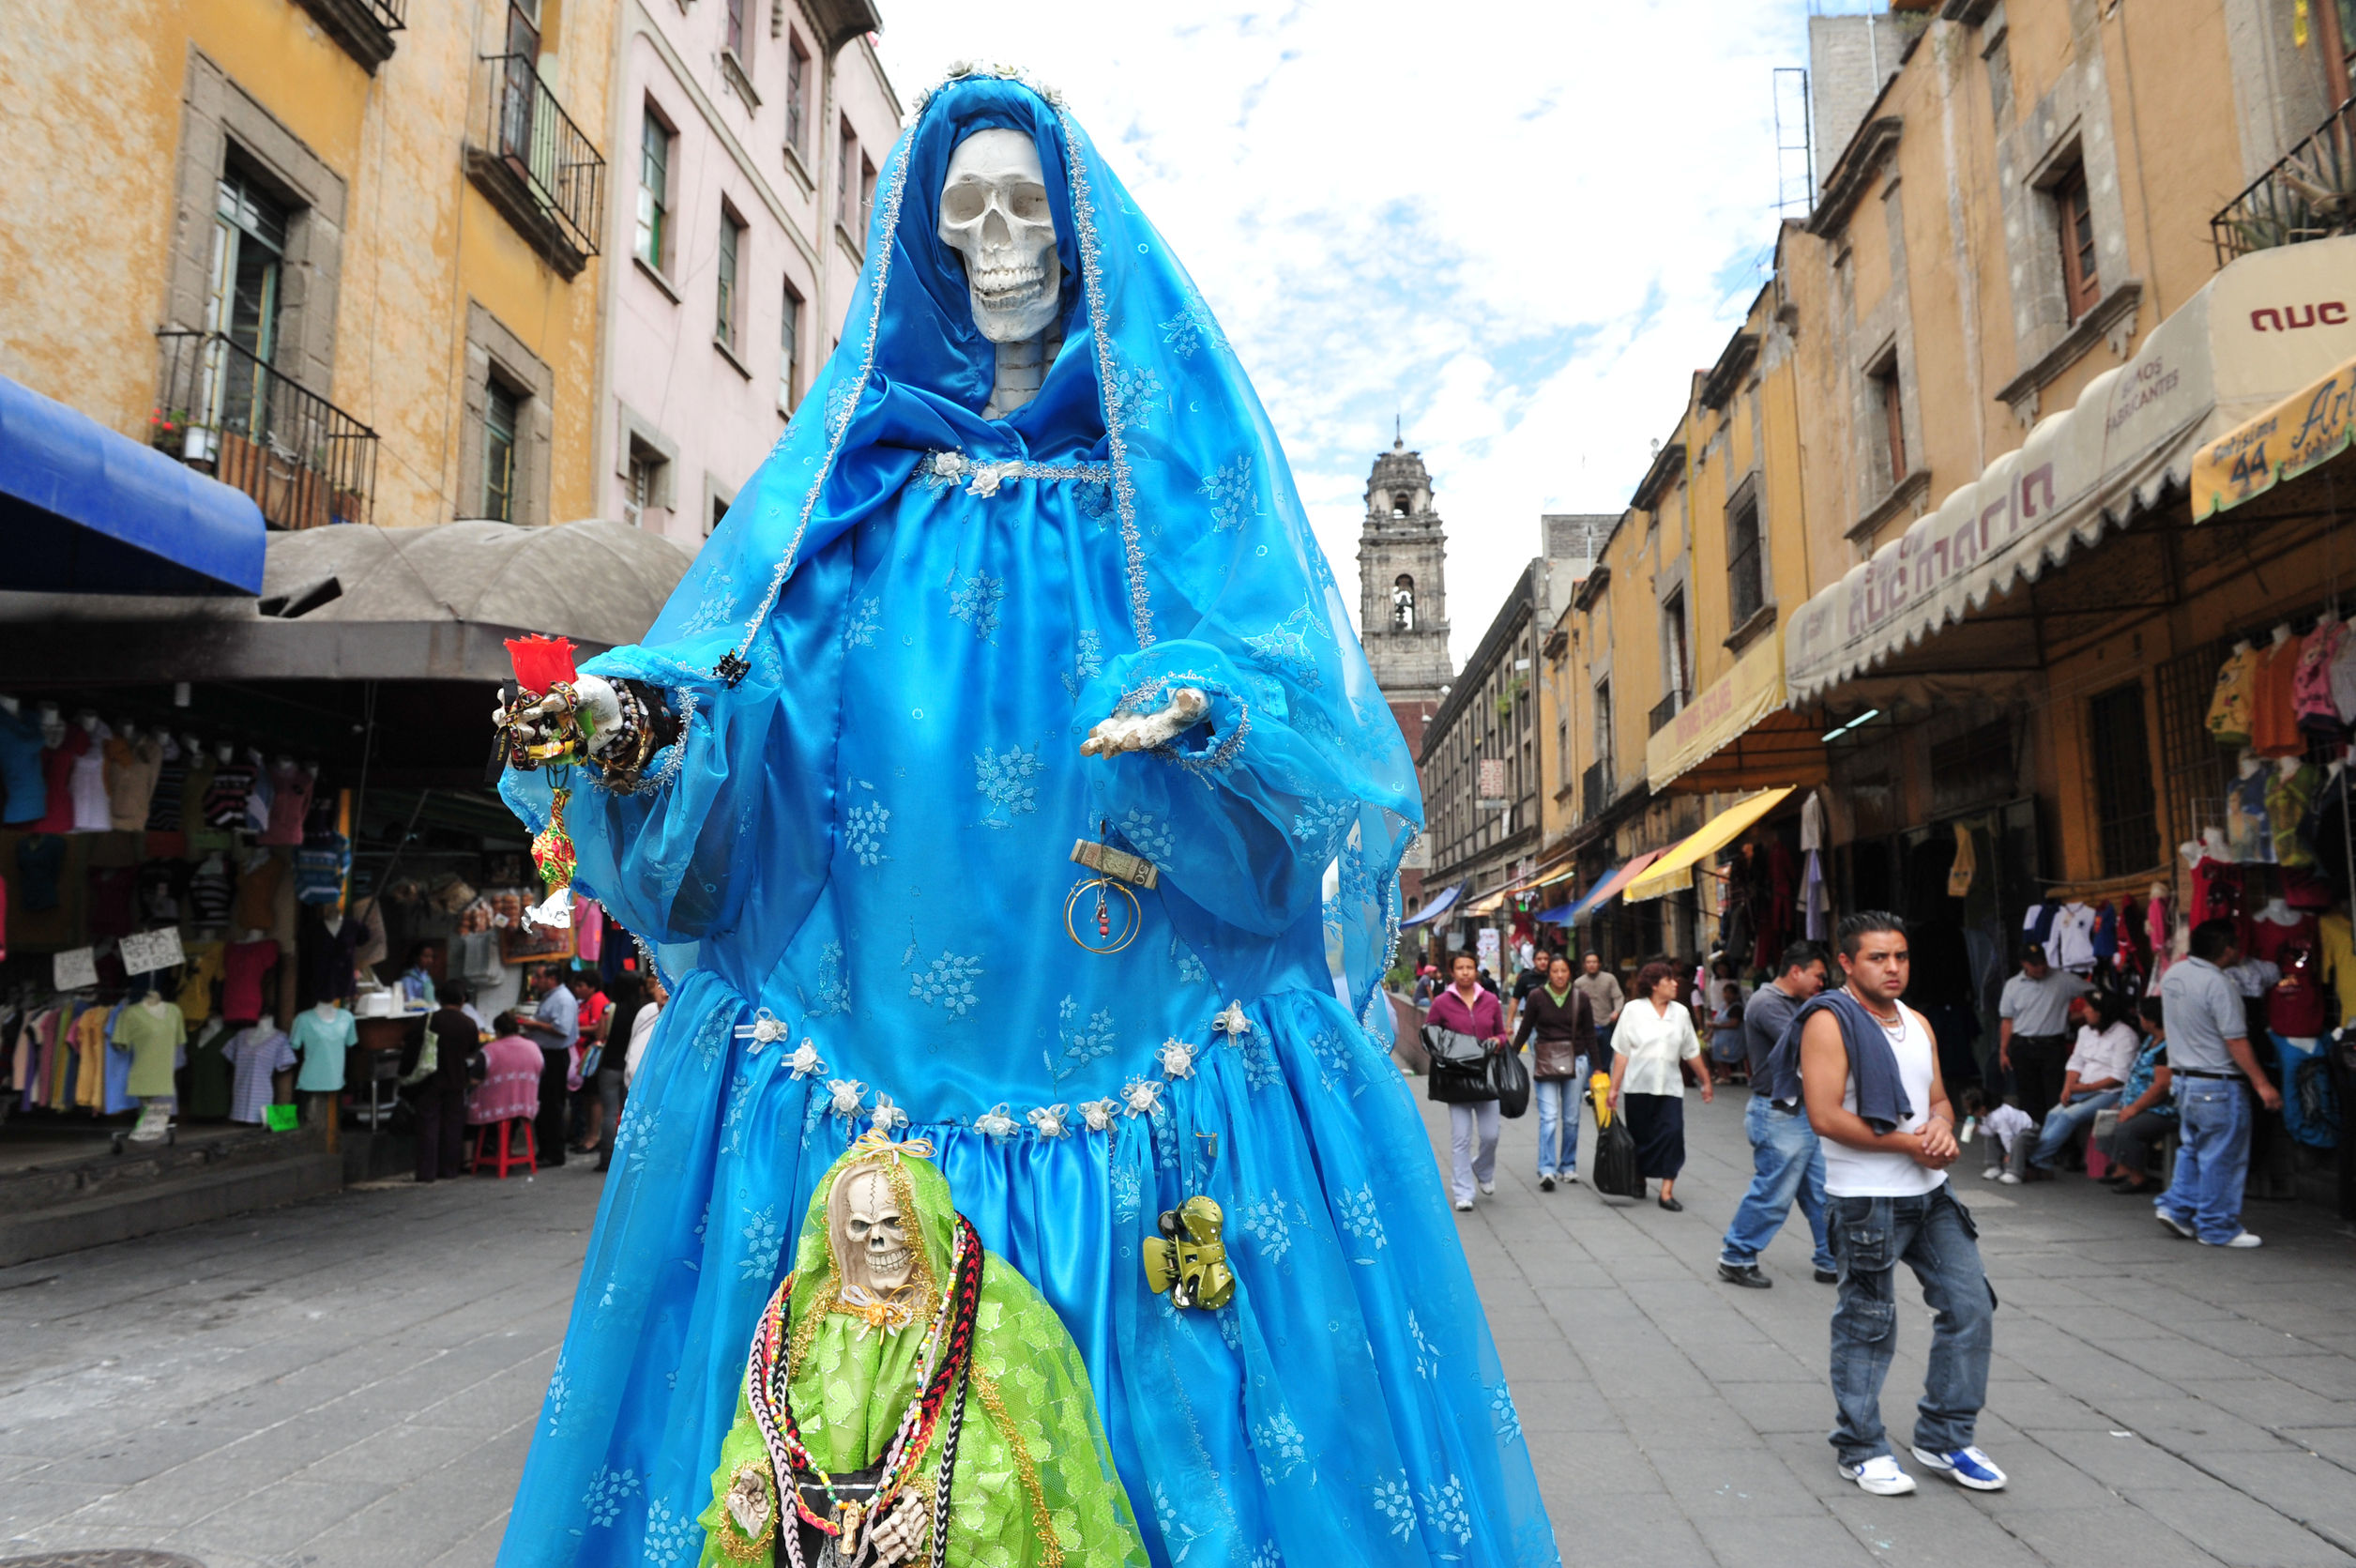 46257424 - mexico city - feb 23:santa muerte in mexico city.santa muerte (spanish for our lady of the holy death), is a female folk saint venerated primarily in mexico and the southwestern united states.